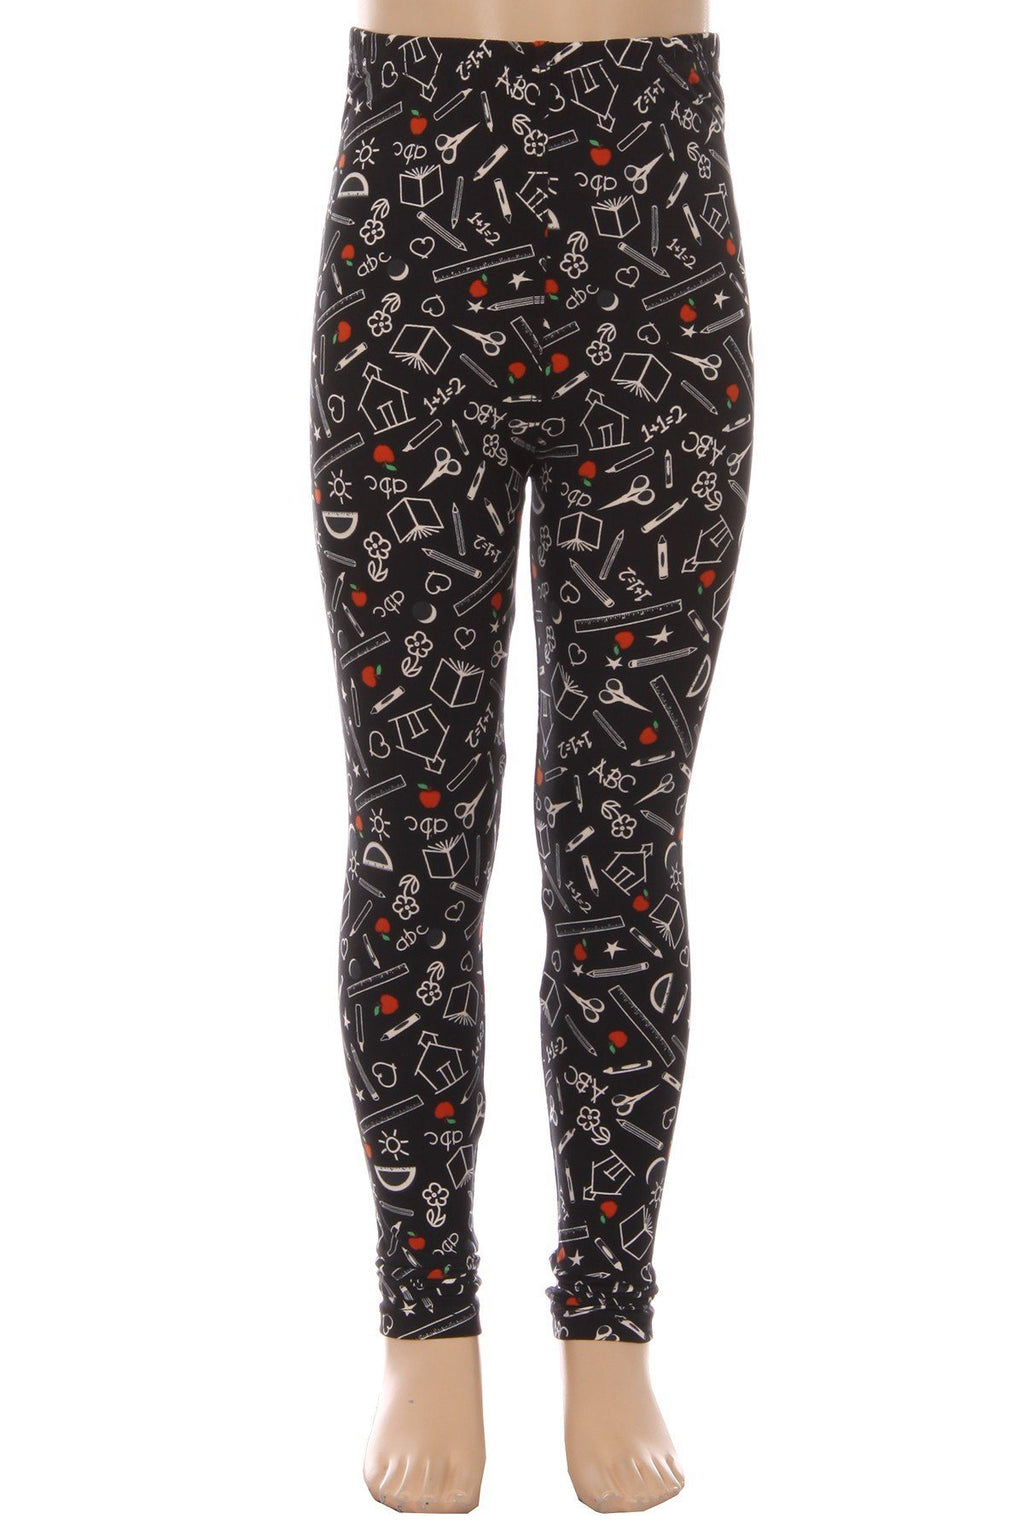 Girl's School House ABC Printed Leggings Black: S and L - MomMe and More Matching Mommy and Me Clothing